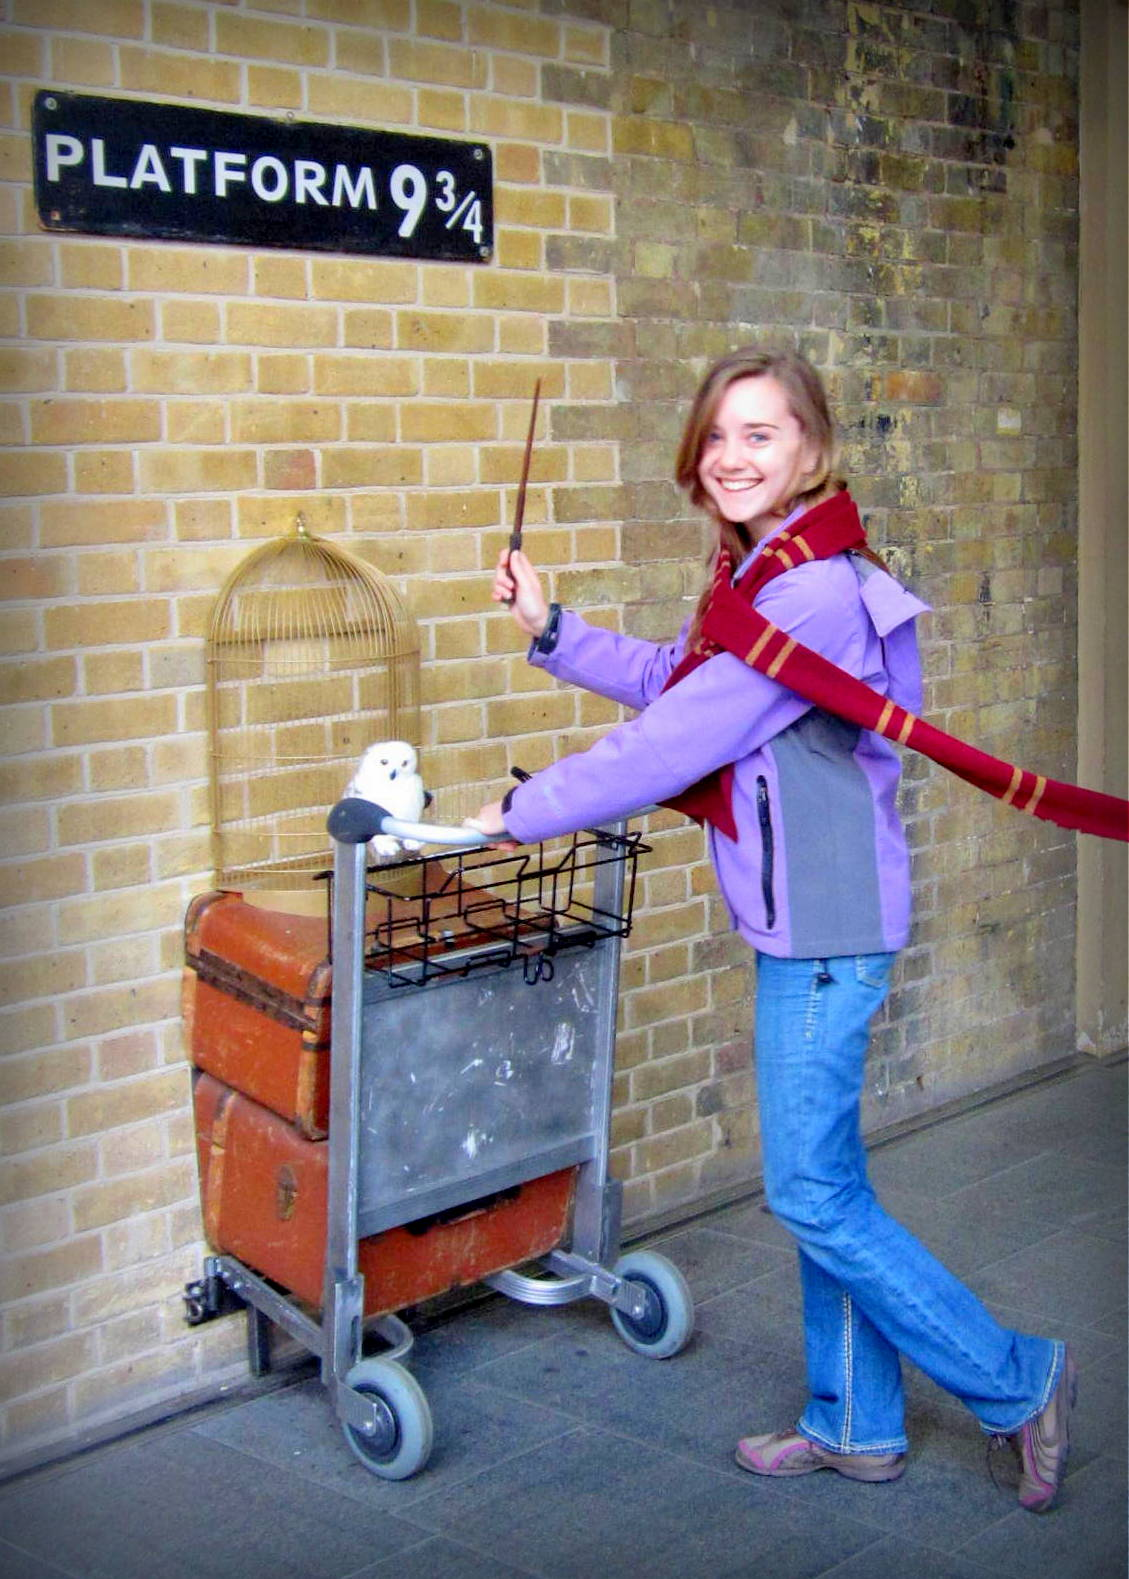 PLATFORM 9 AND THREE QUARTERS. London, England